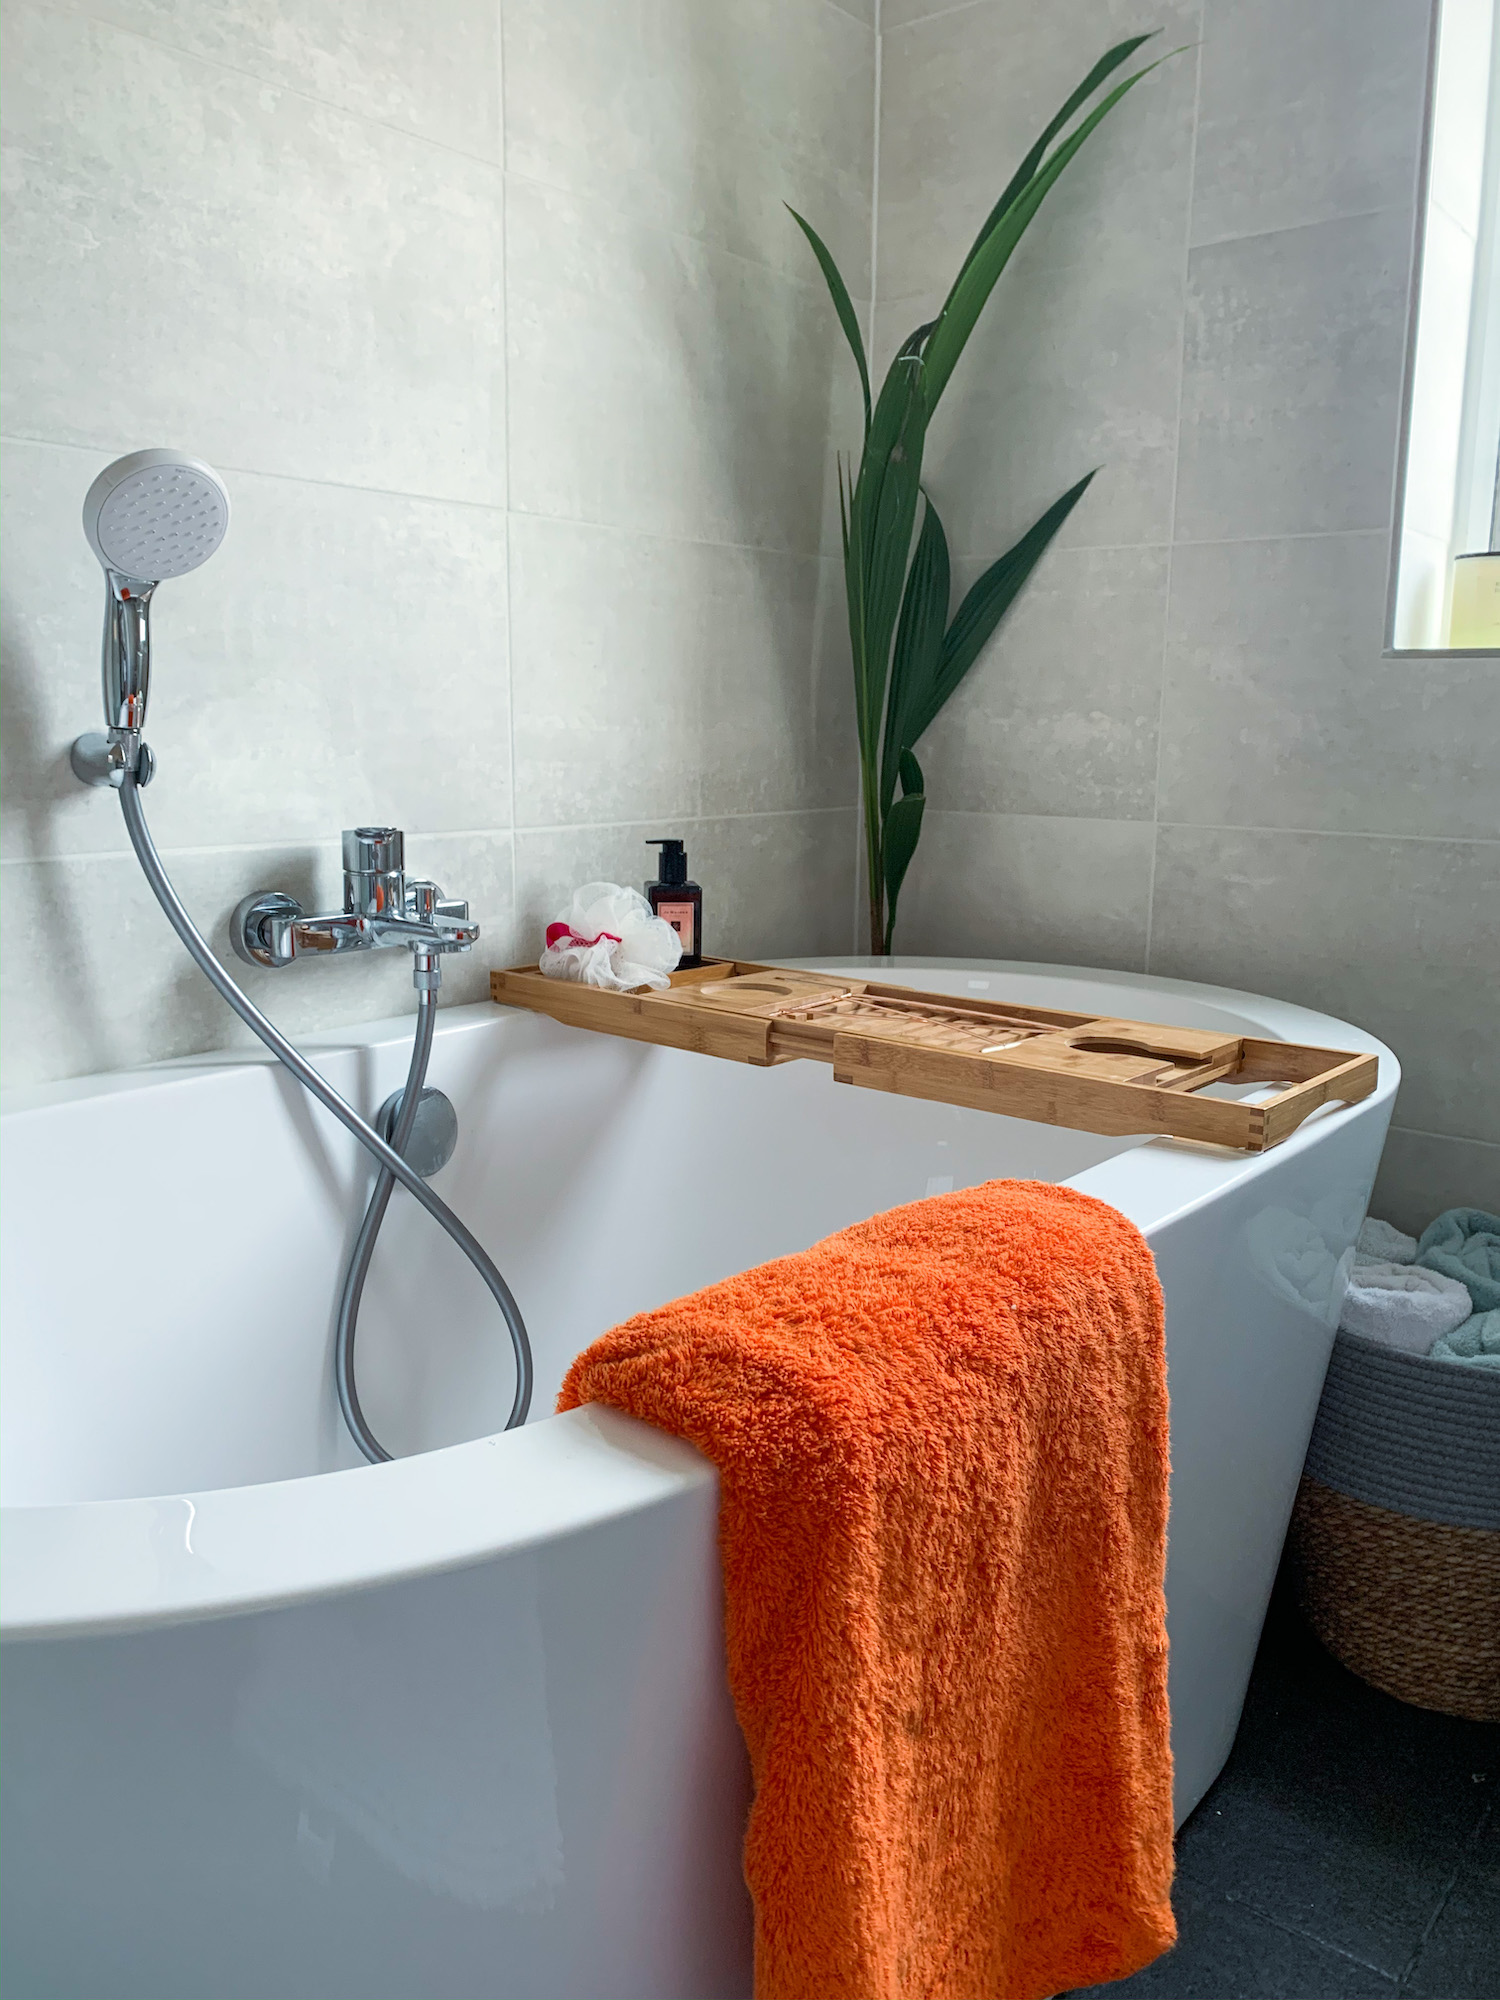 How to create a luxury hotel like bathroom in a small space | Bathroom Renovation | Elle Blonde Luxury Lifestyle Destination Blog